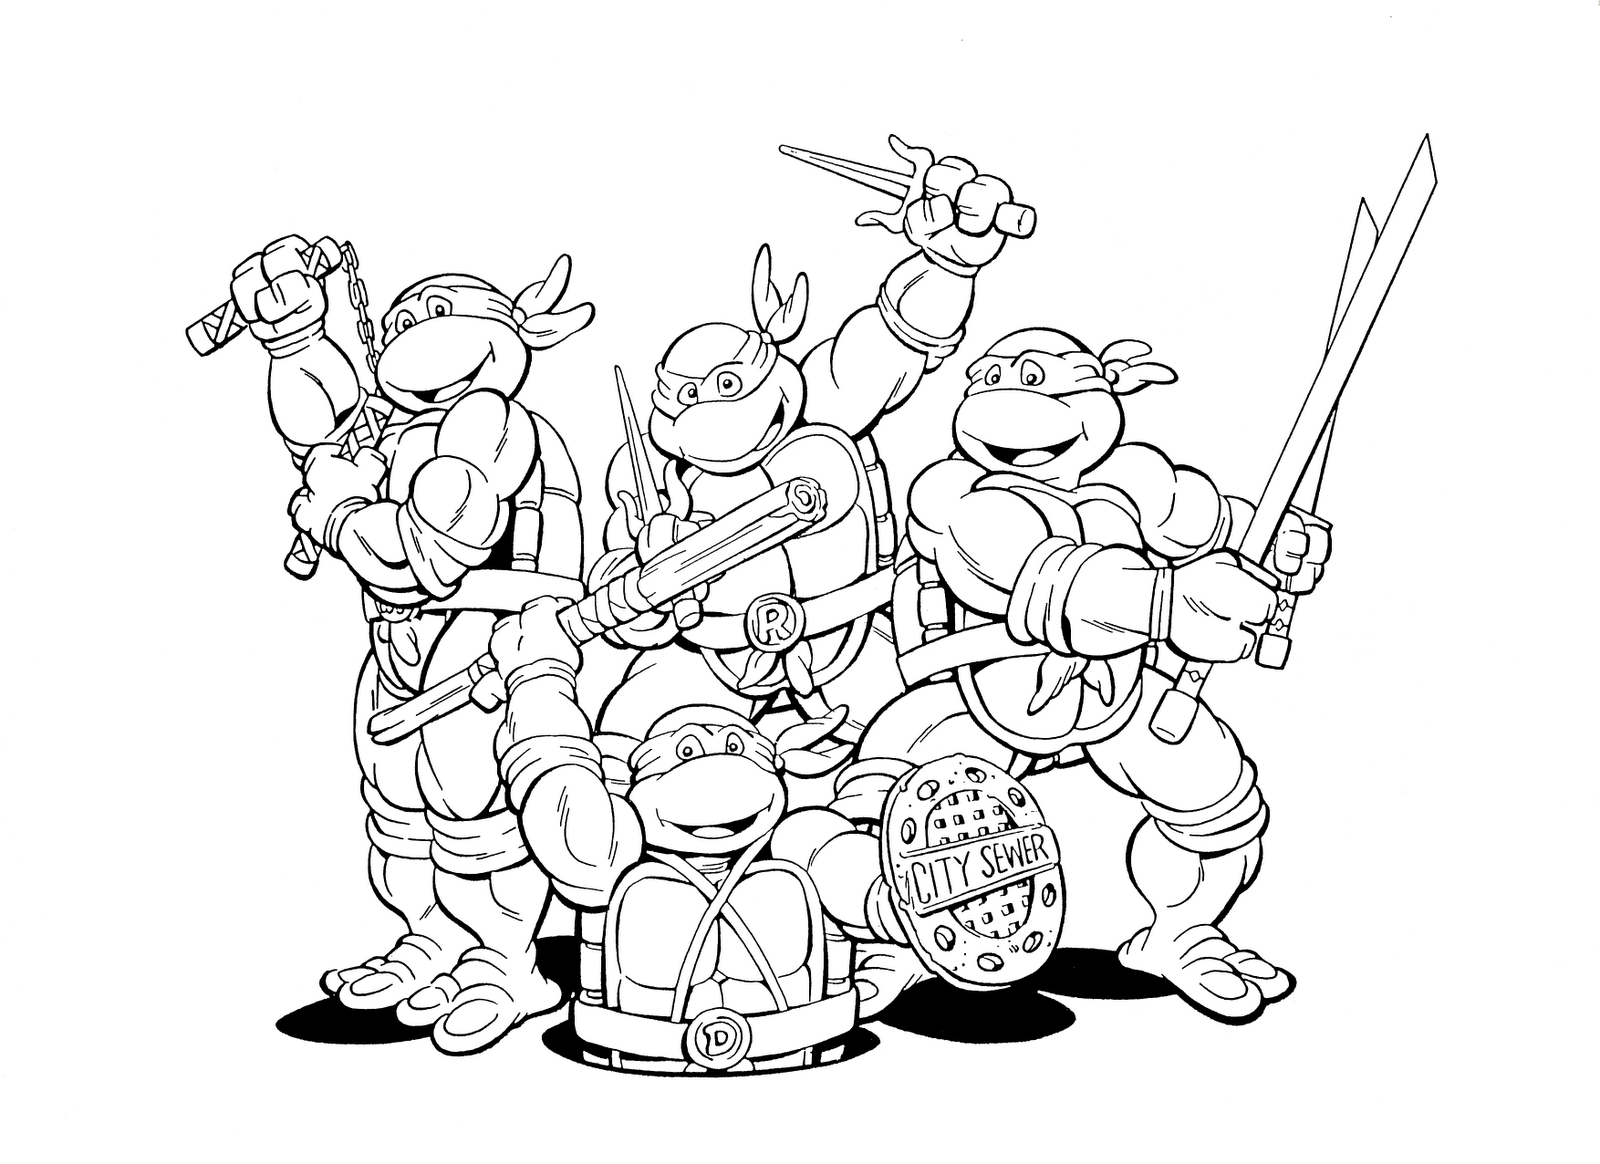 online coloring pages ninja turtles - photo#7